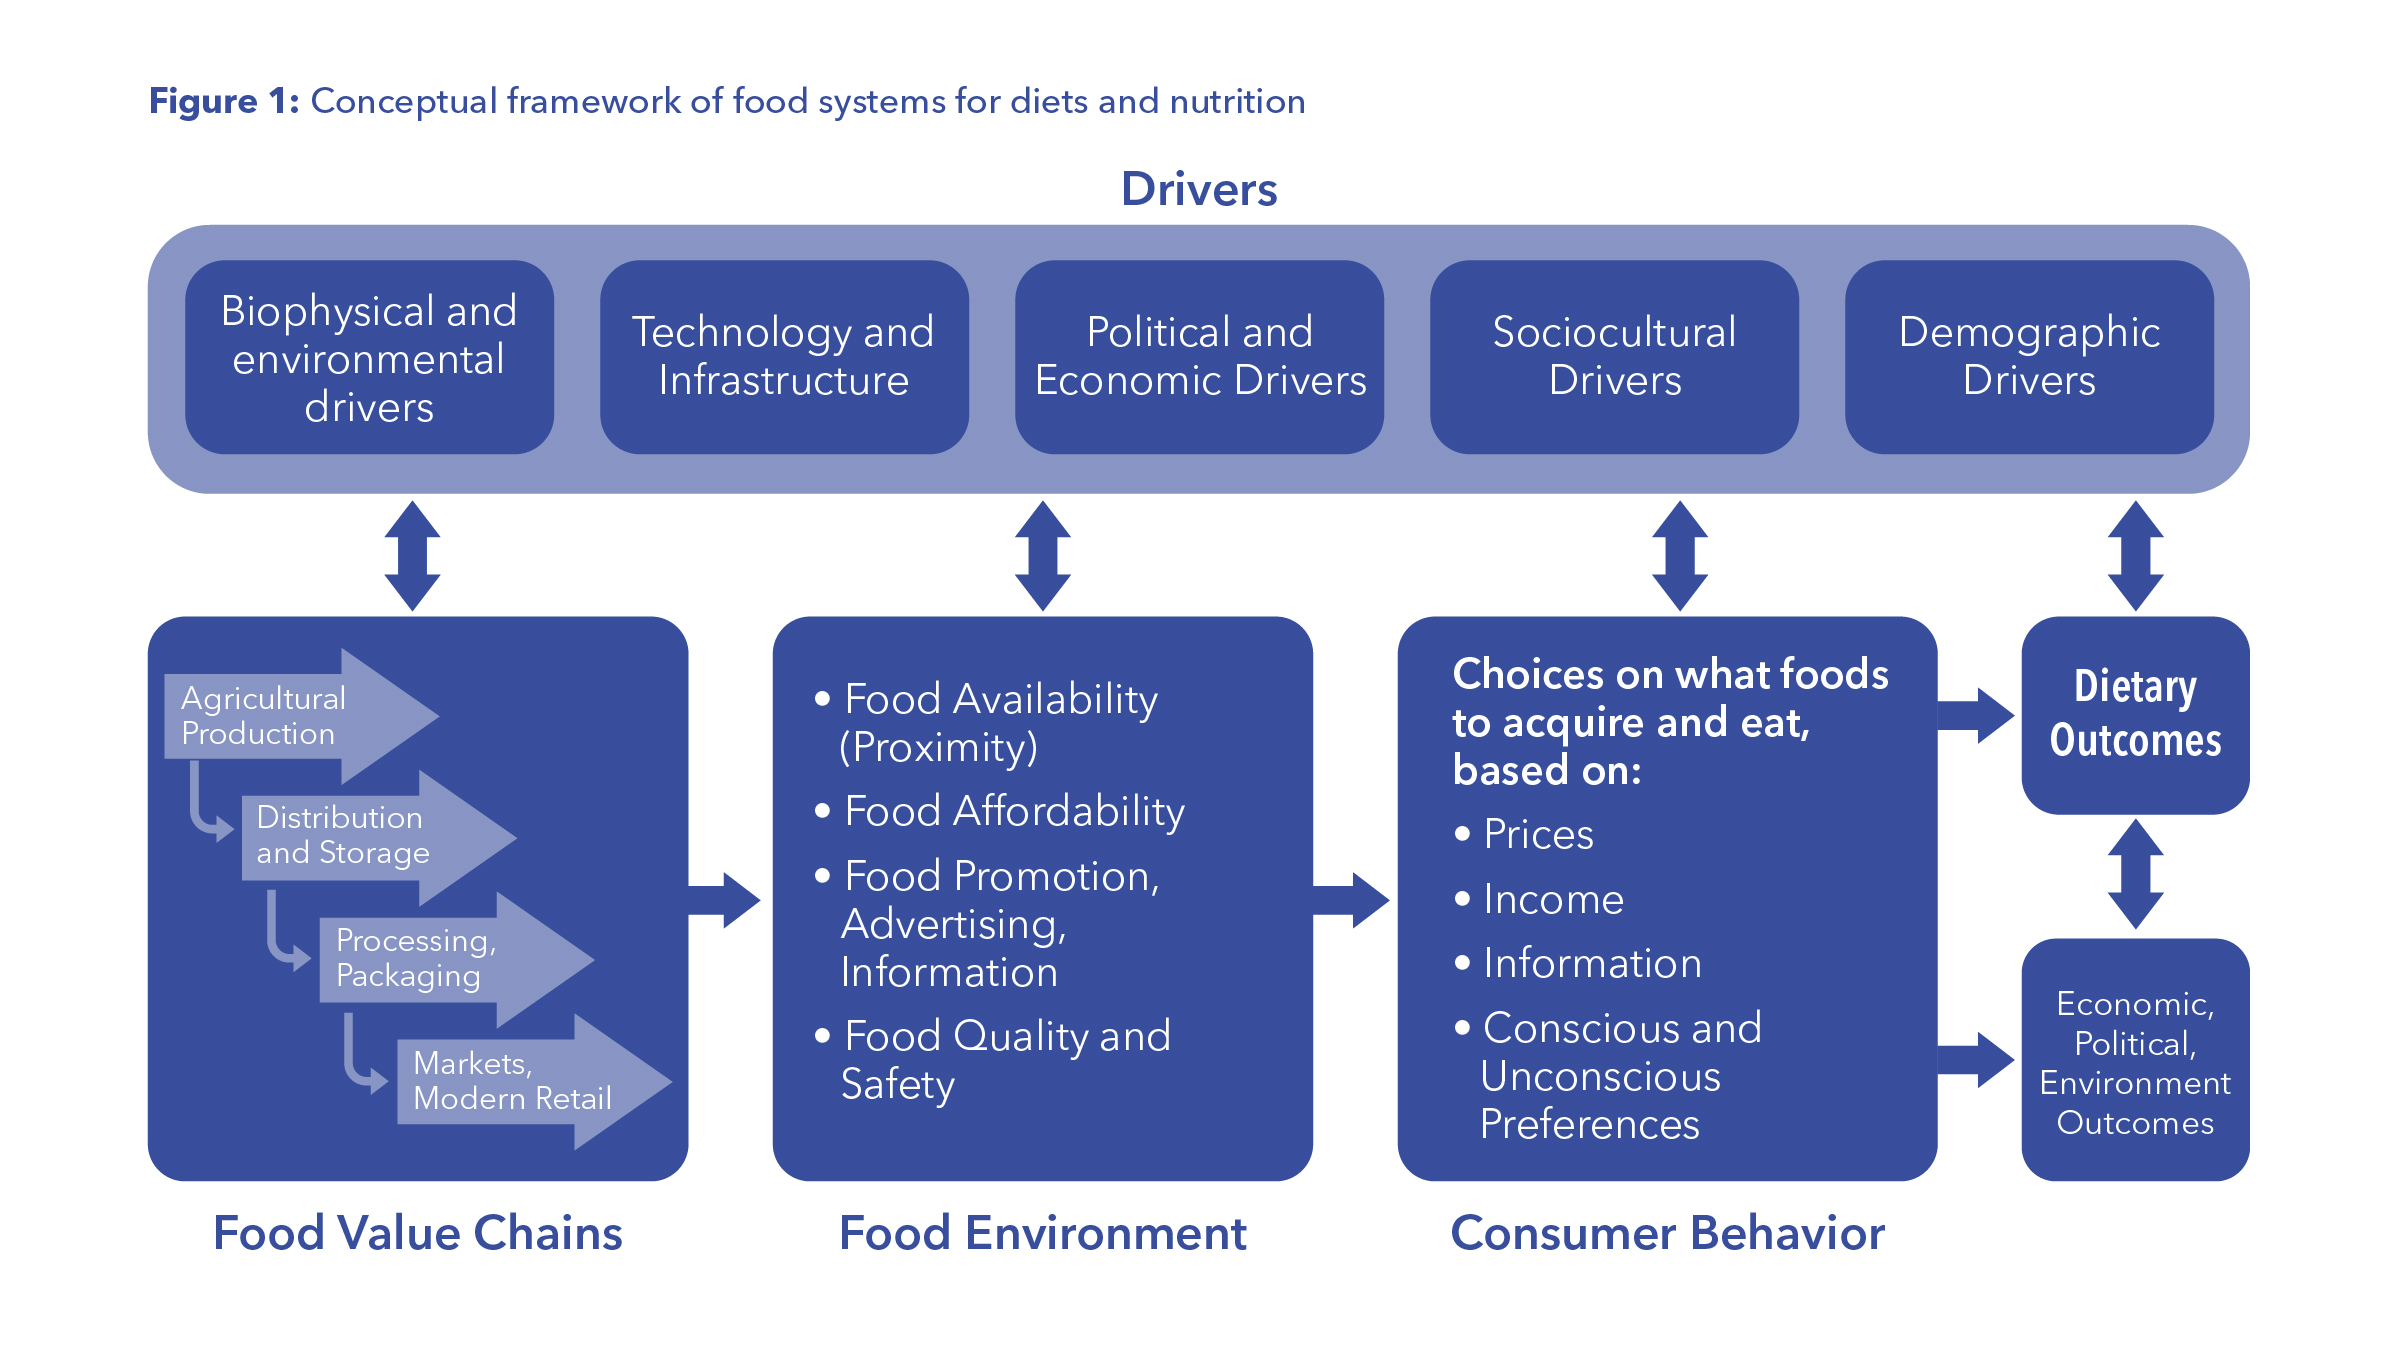 Food Systems Innovations for Healthier Diets